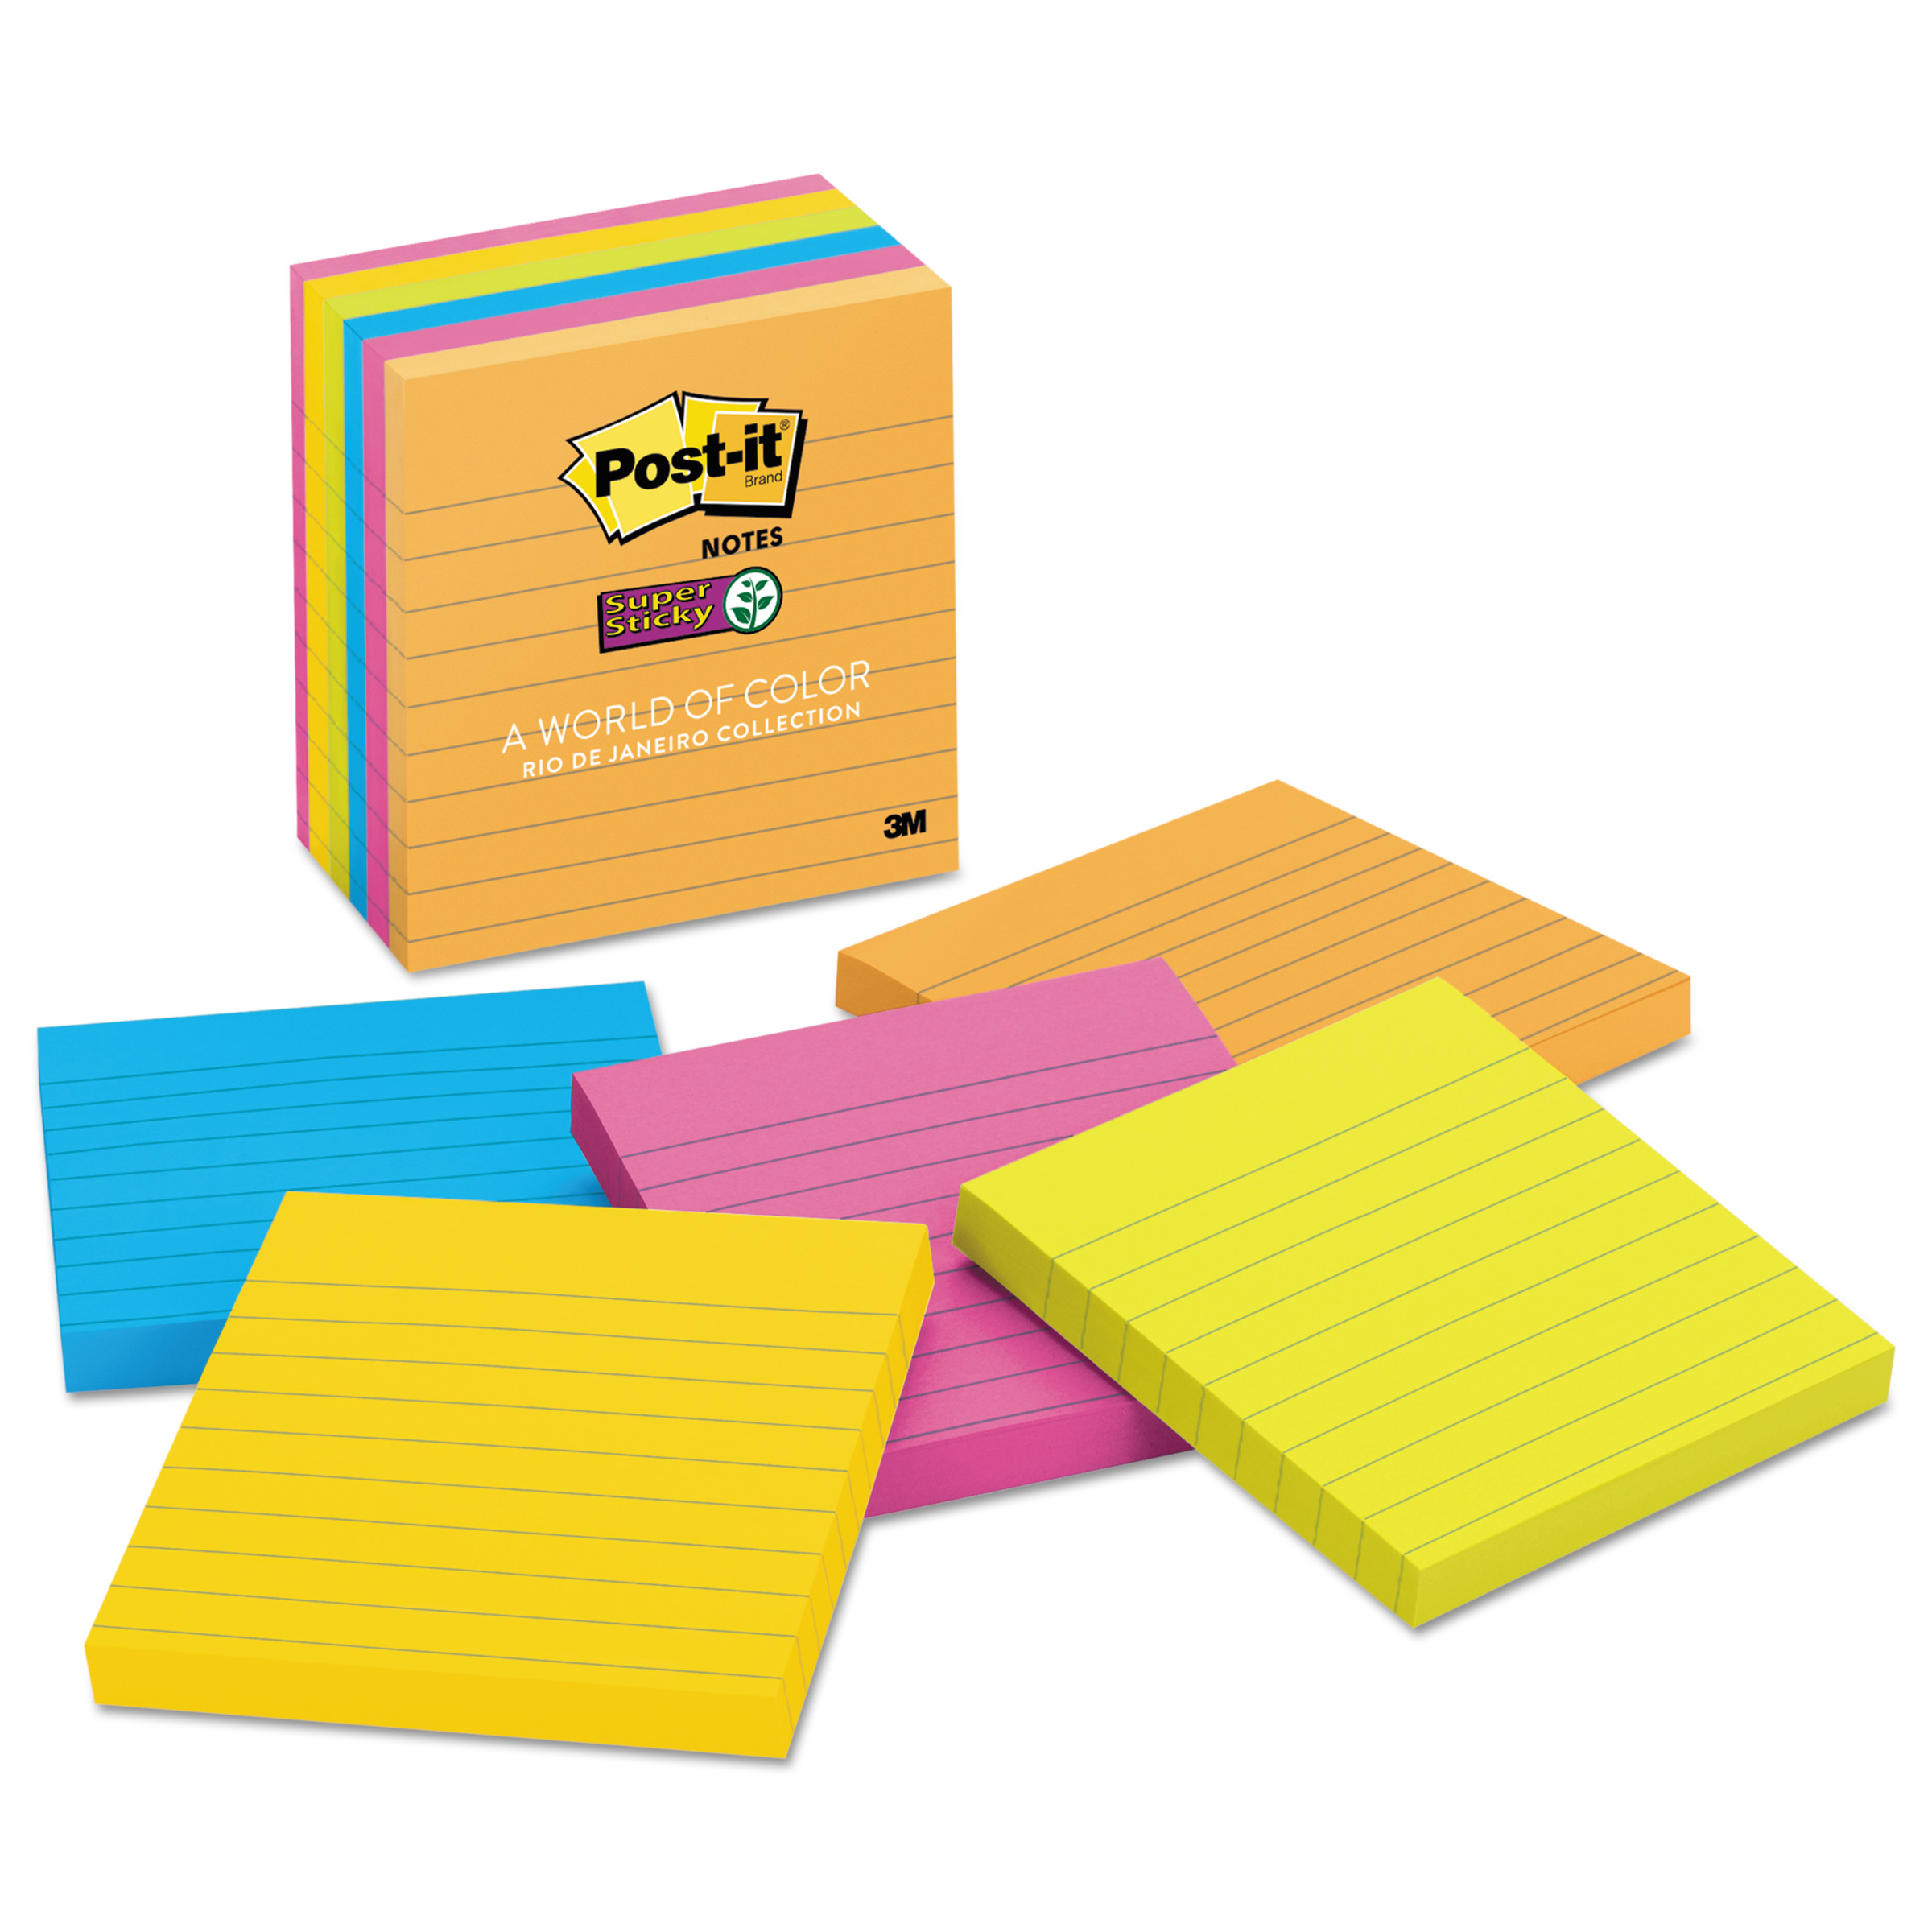 Post-it Super Sticky Lined Notes 6 Pack, Rio de Janeiro Collection, 4in x 4in